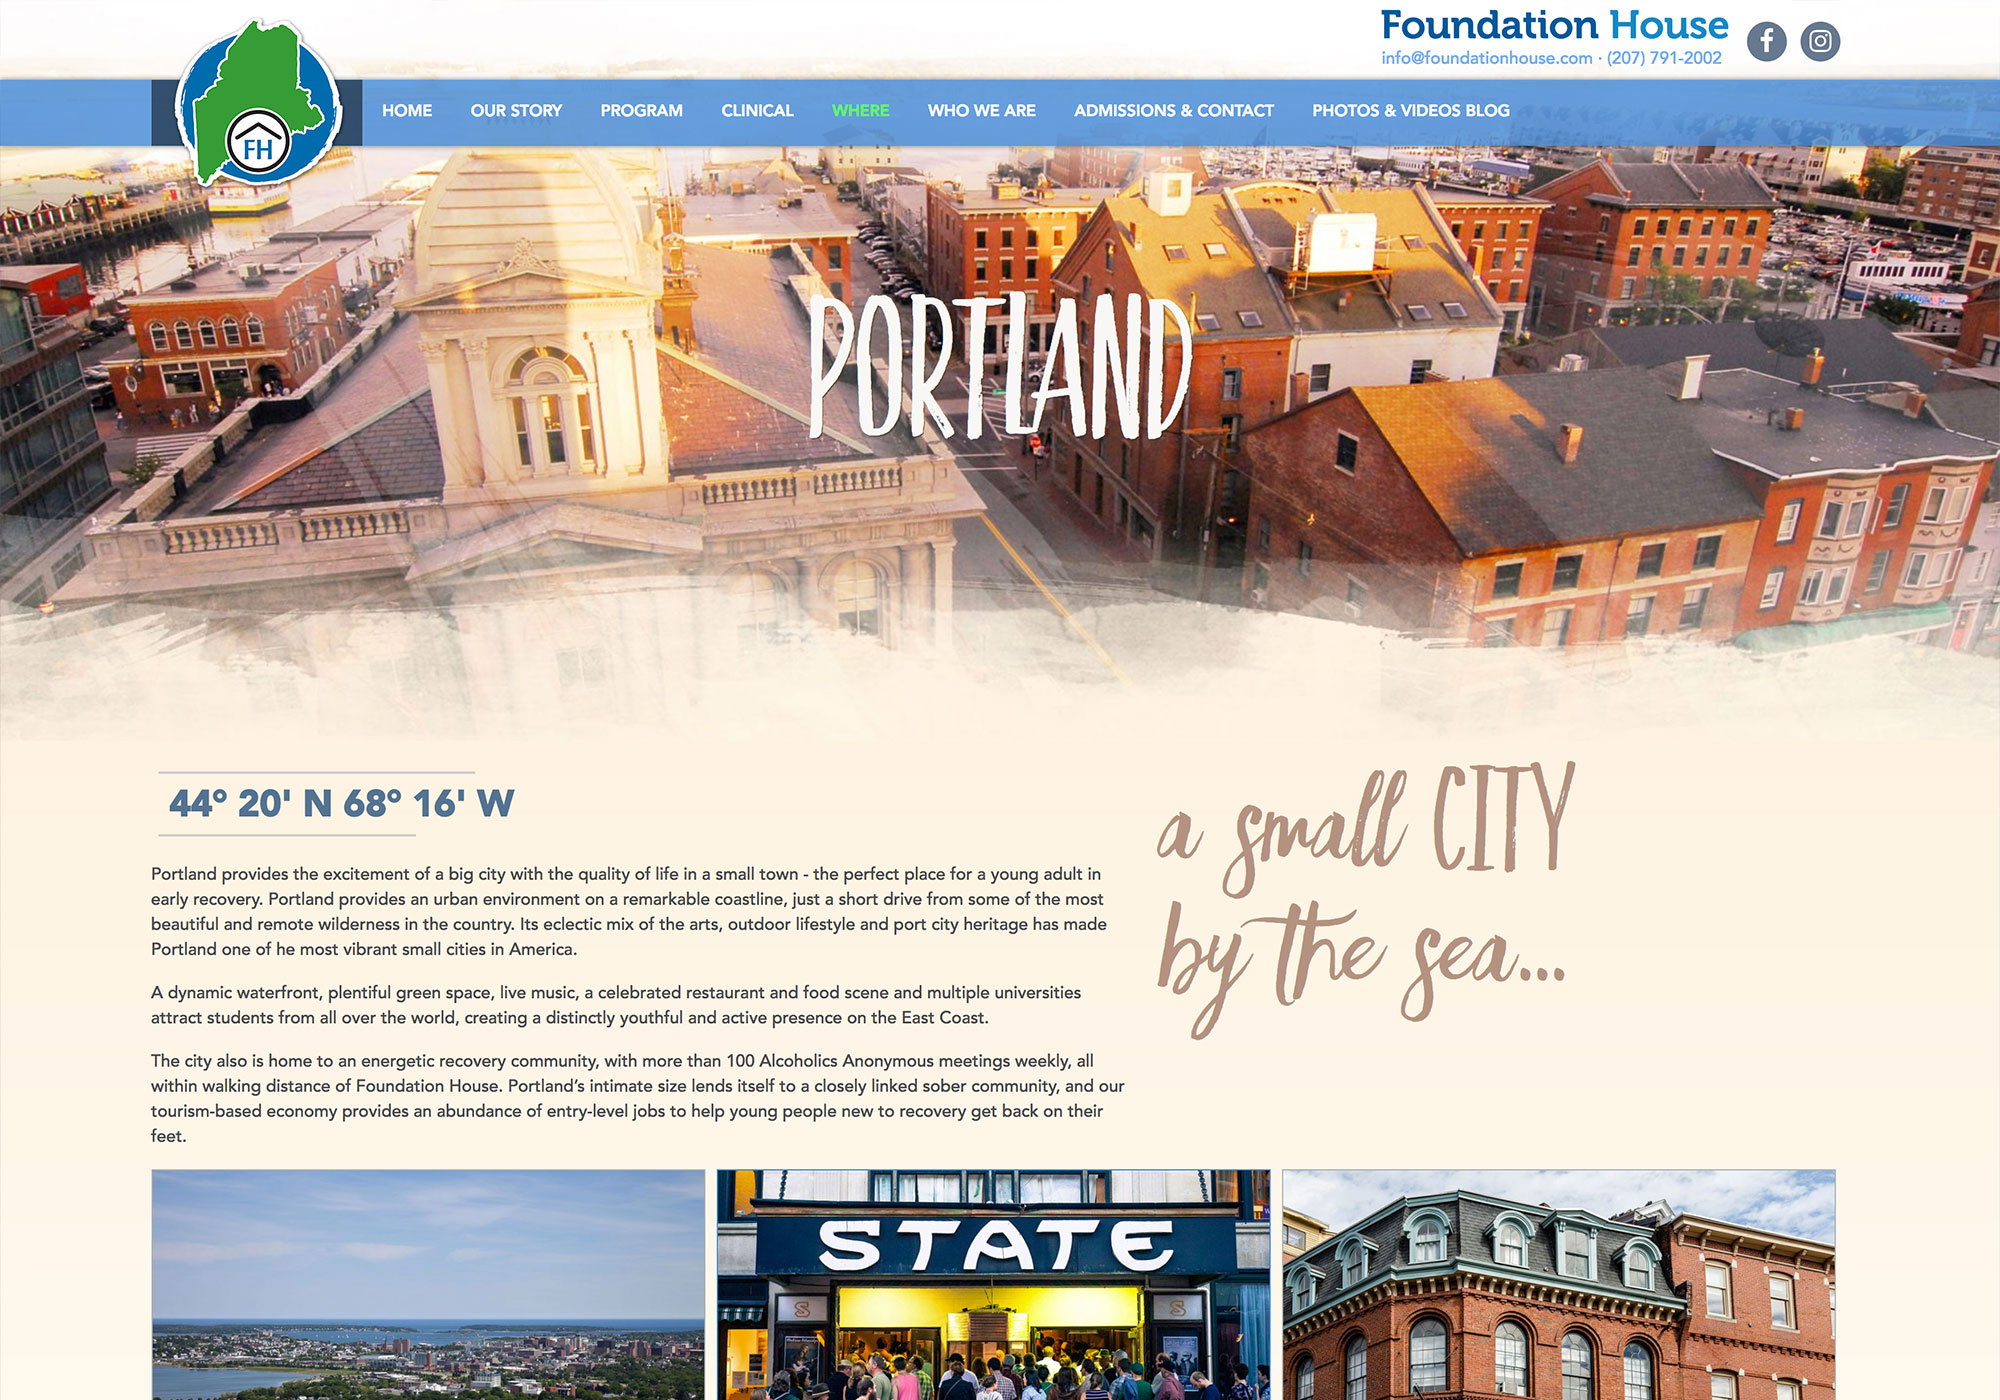 Maine web design company, SlickFish Studios, designed and developed the new Foundation House - a screenshot of part of the Portland, Maine page.